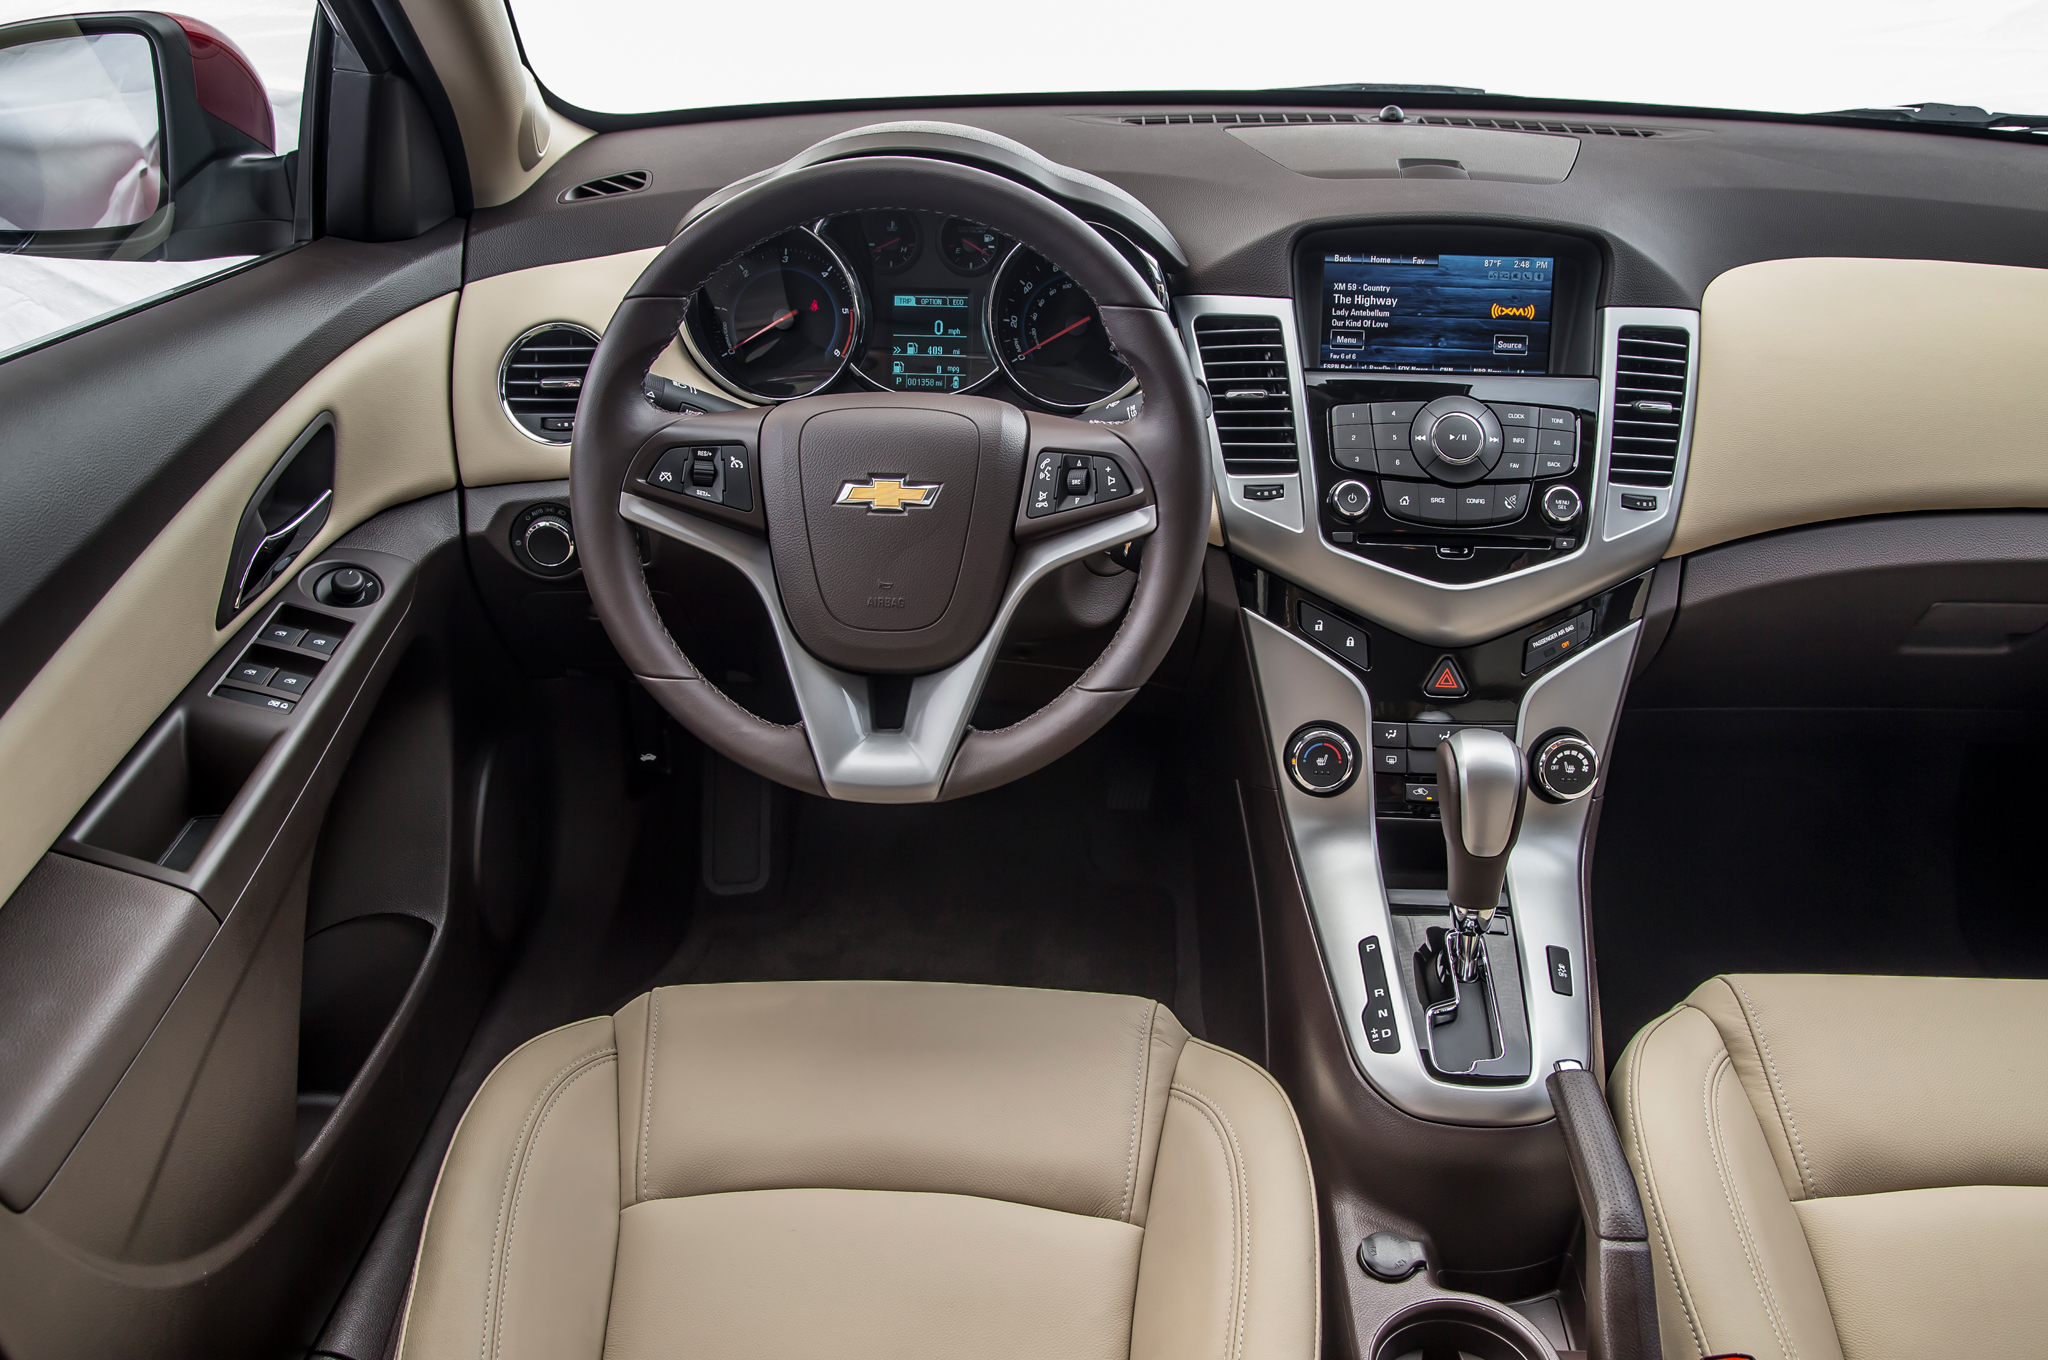 2014 Chevrolet Cruze - Information and photos - ZombieDrive